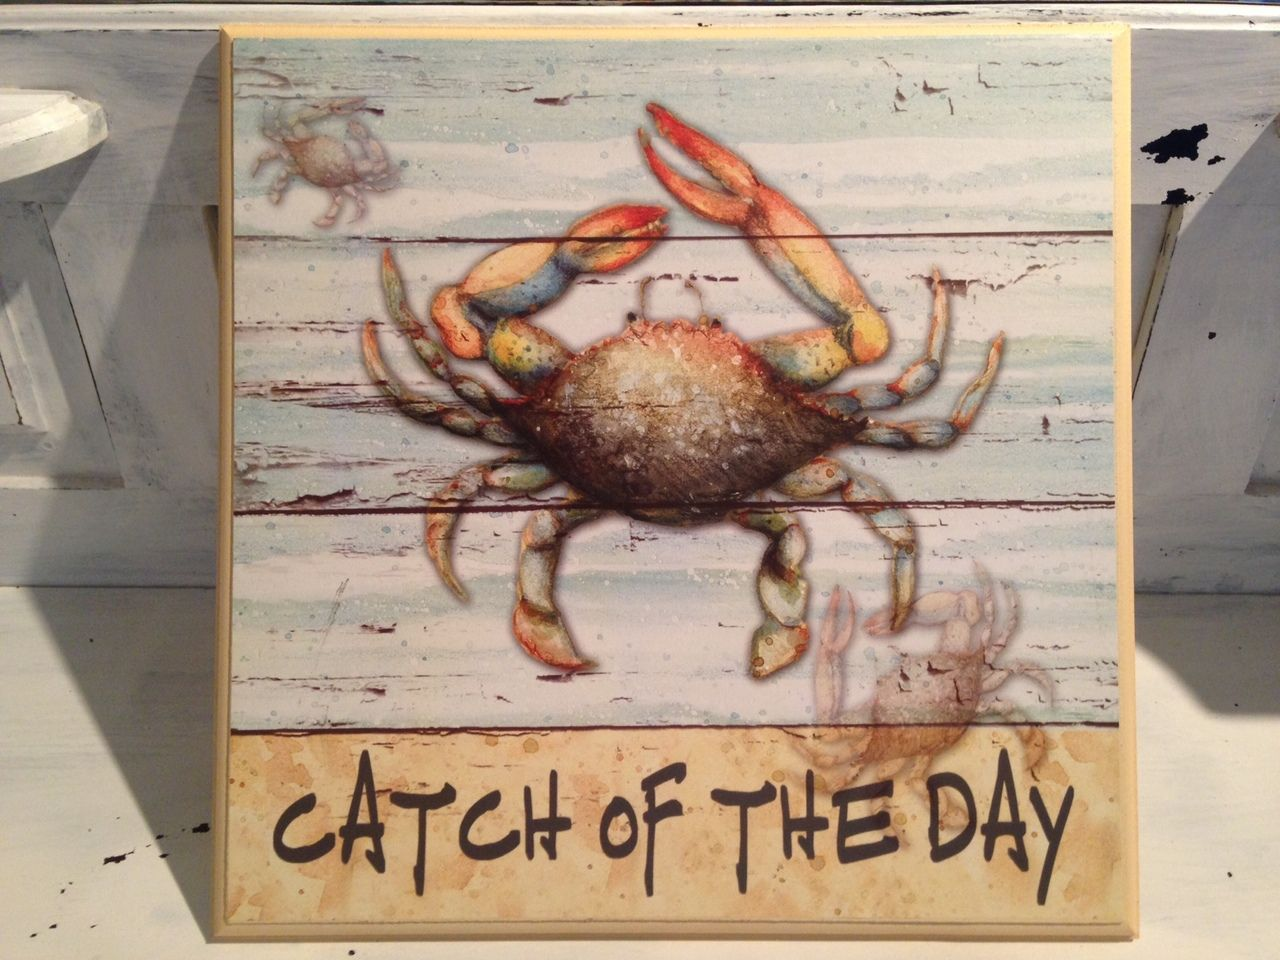 Catch of the Day Blue Crab Beach signs, Seashore decor